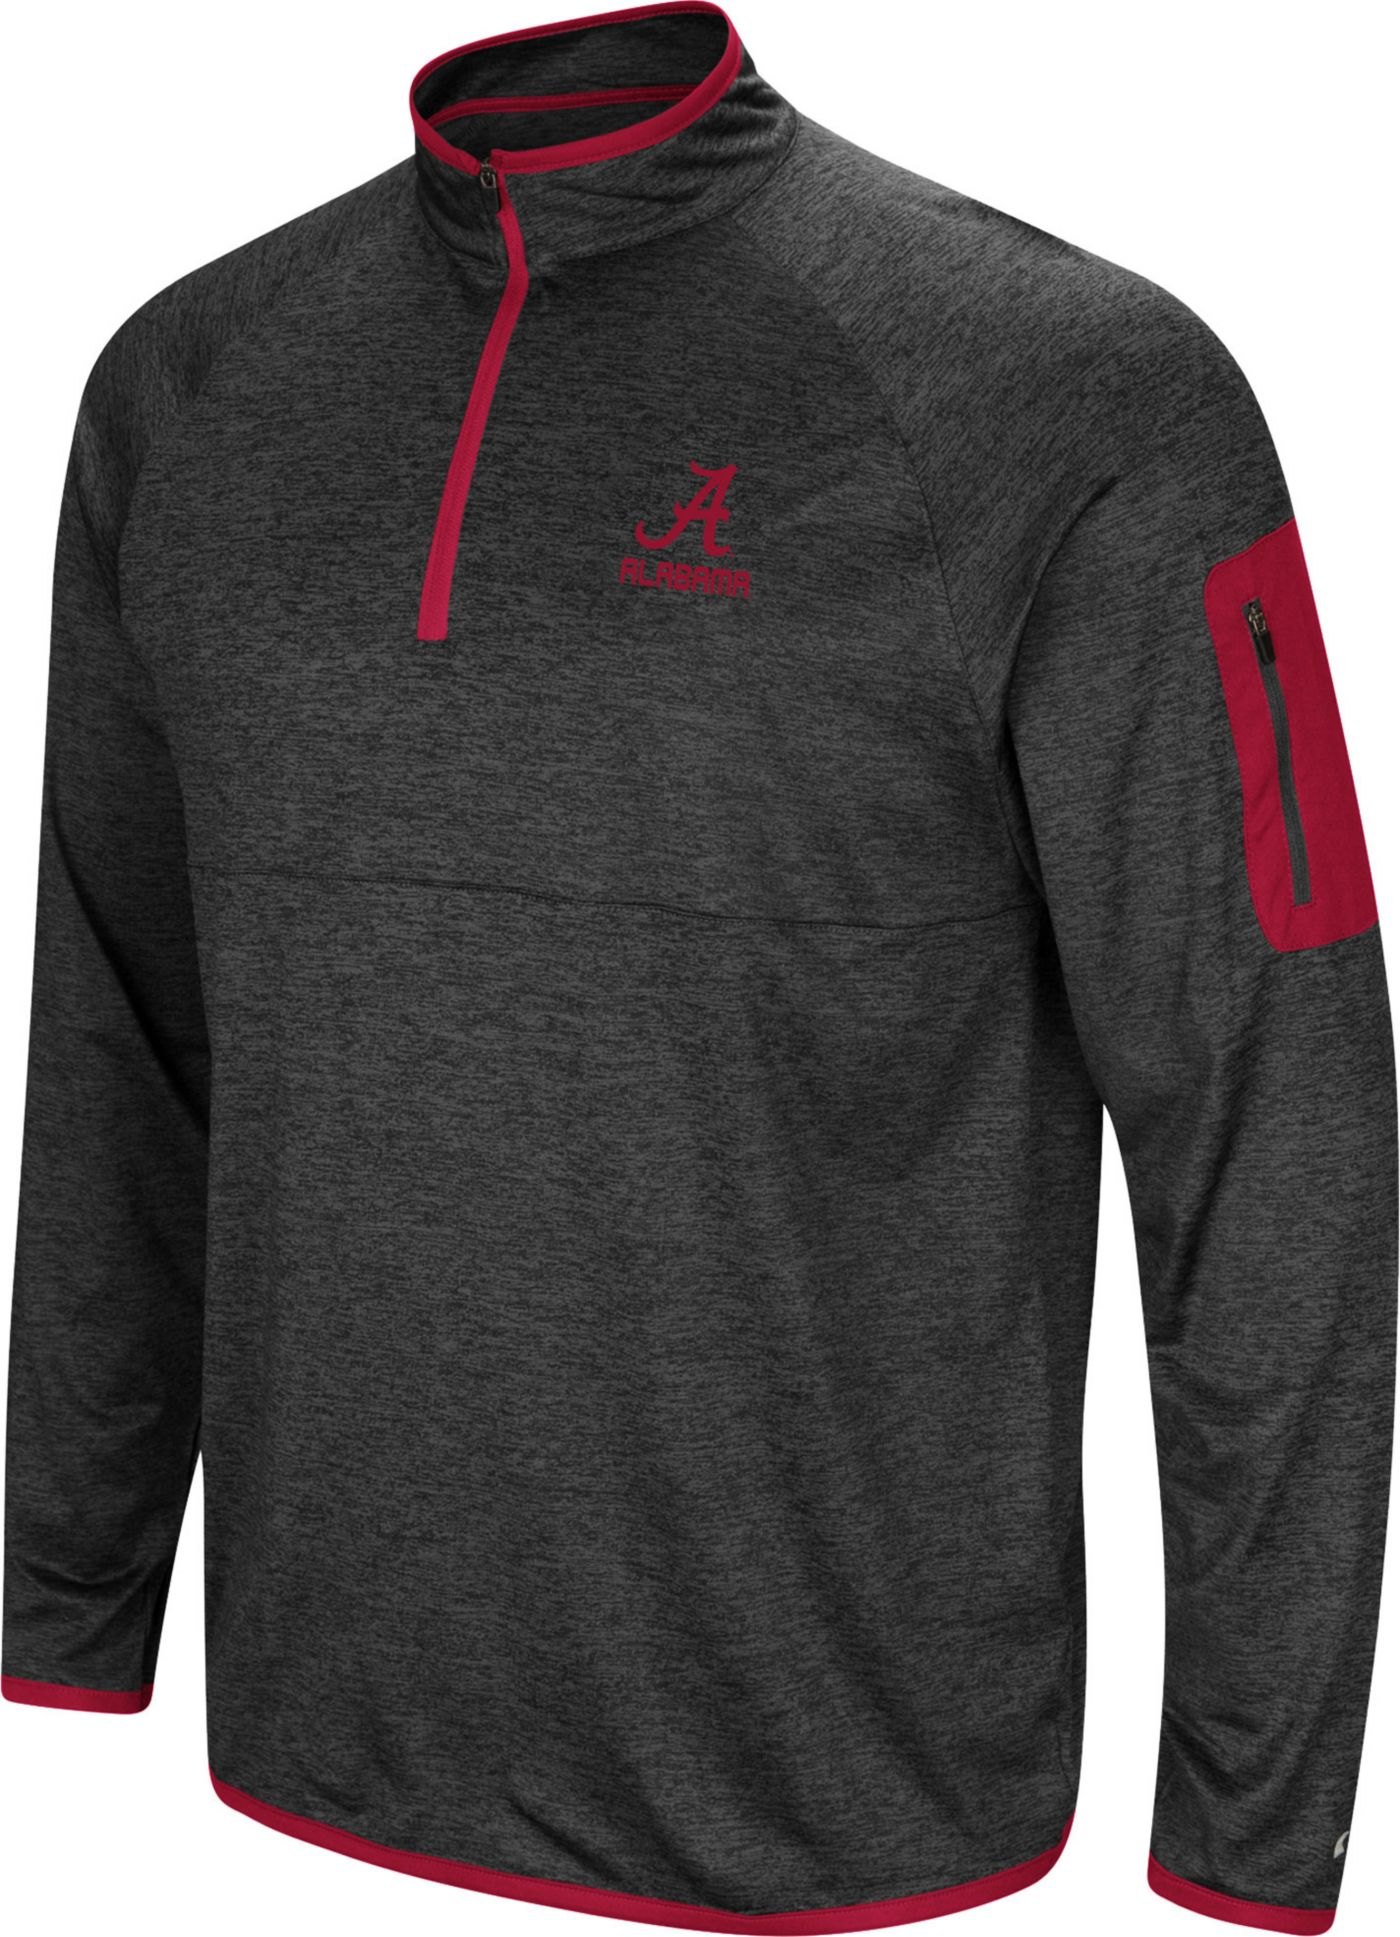 Colosseum Men's Alabama Crimson Tide Indus River Quarter-Zip Black Shirt